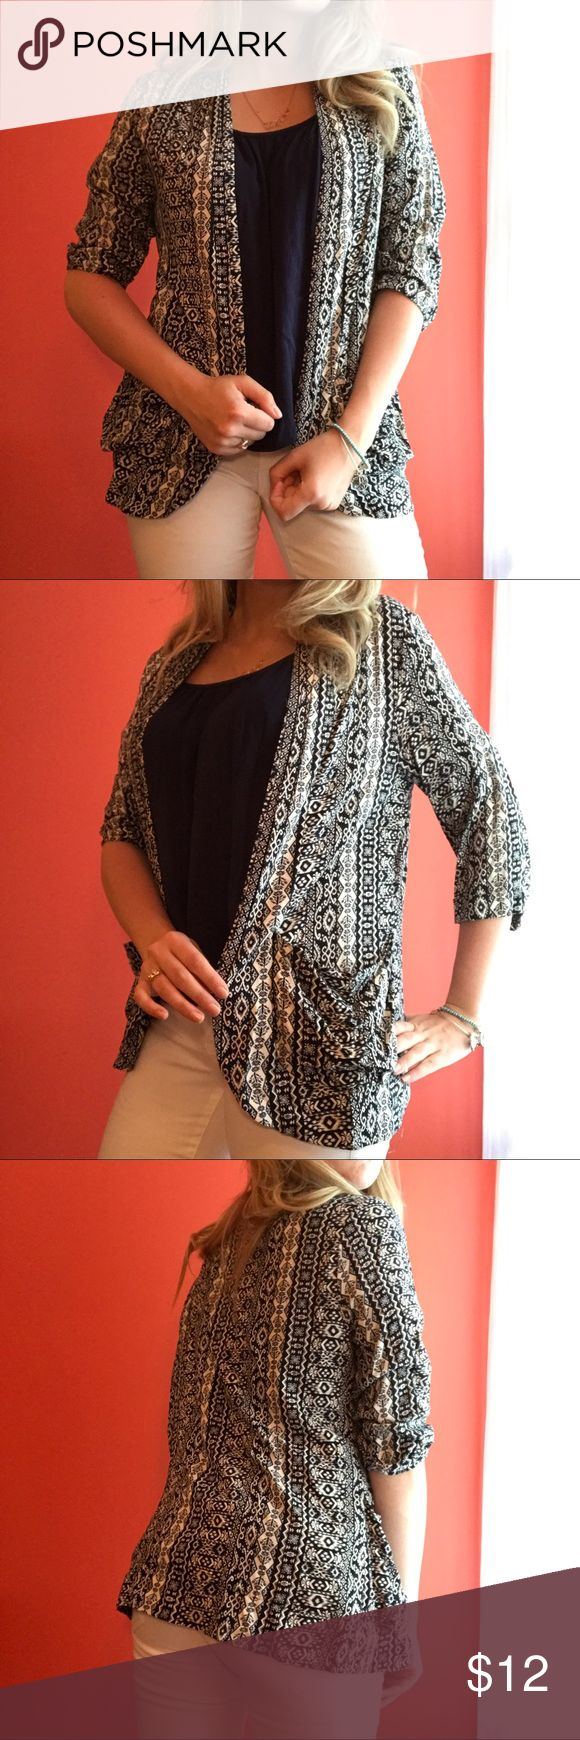 Tribal print cardigan/coverup! Tribal print cardigan/coverup! Forever 21 size medium. 3/4 sleeves and pockets. Cute with a top and jeans or as a beach cover up. Forever 21 Sweaters Cardigans